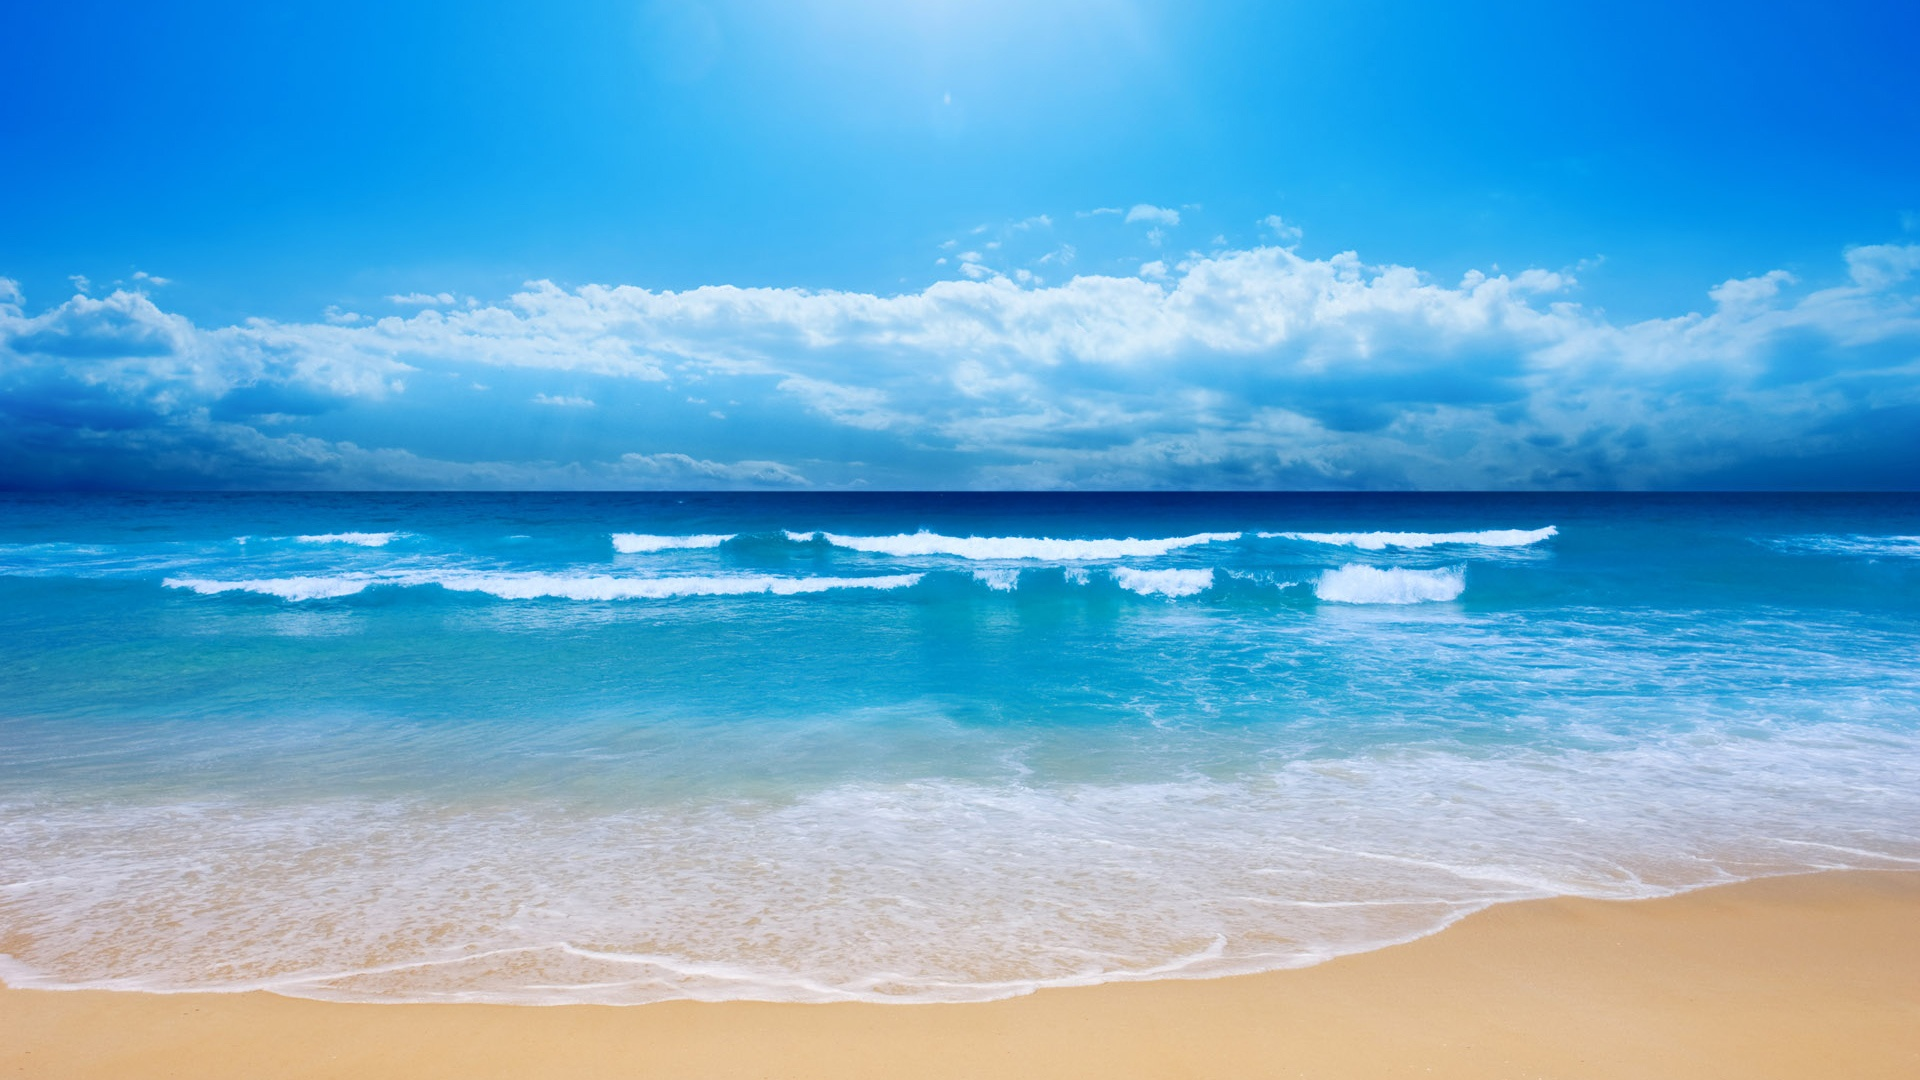 Small Sea Wave Hdtv 1080p Wallpapers In Jpg Format For Free Download